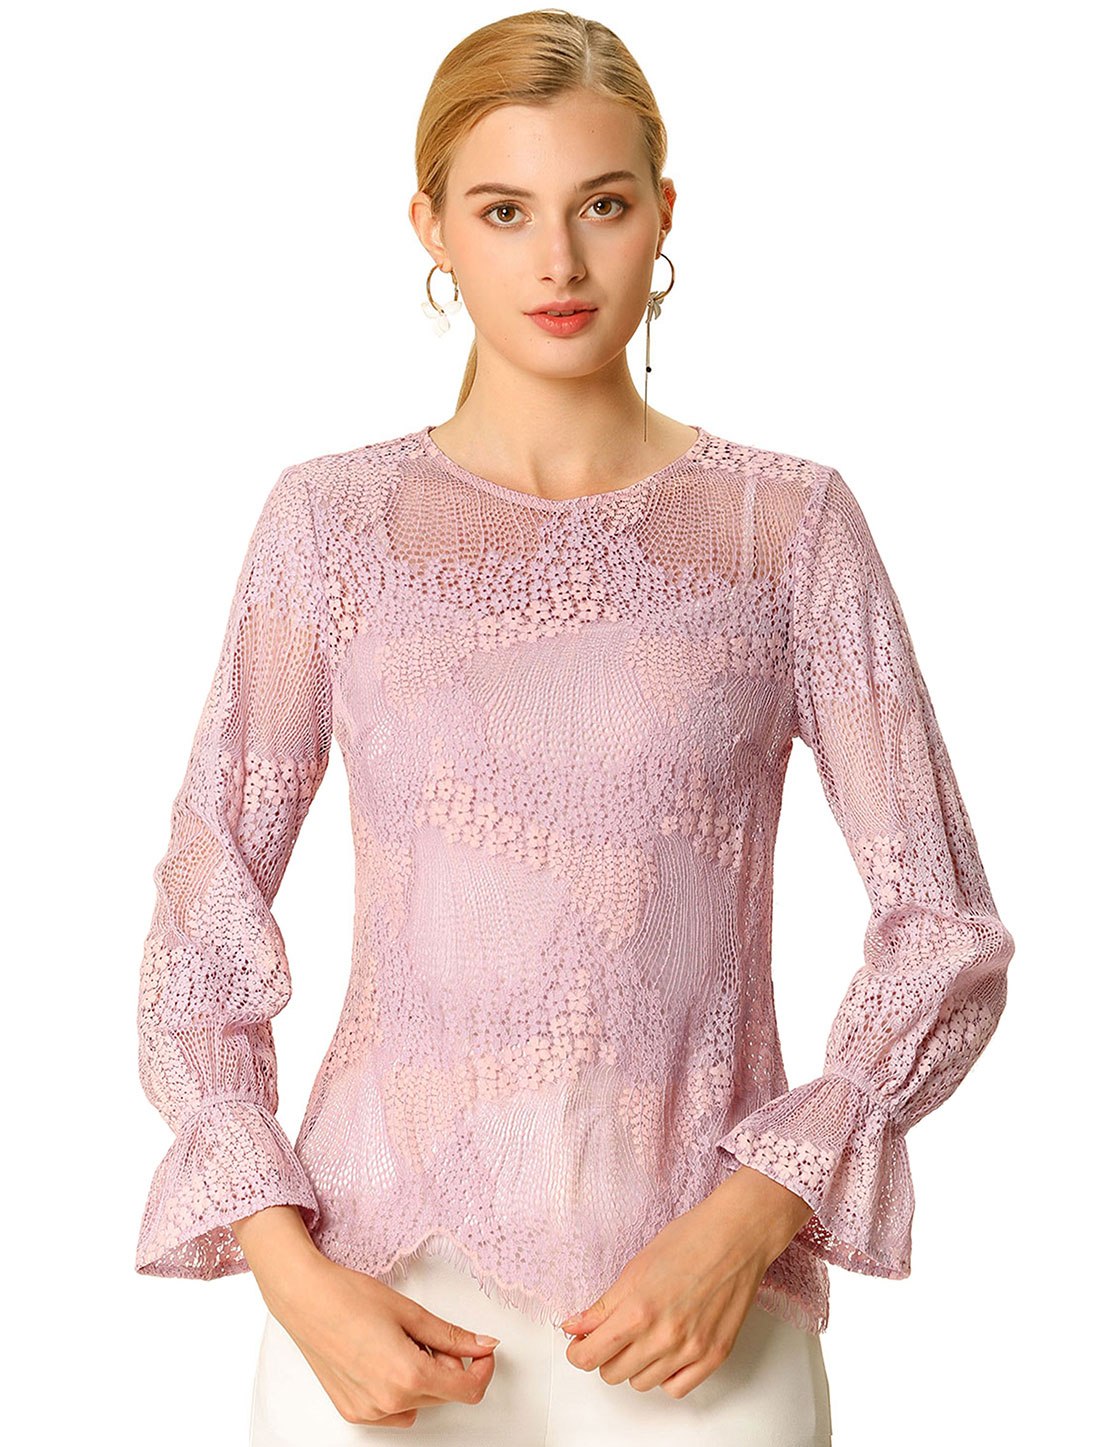 Allegra K Women's Round Neck Ruffle Long Sleeves Lace Top Pink XS